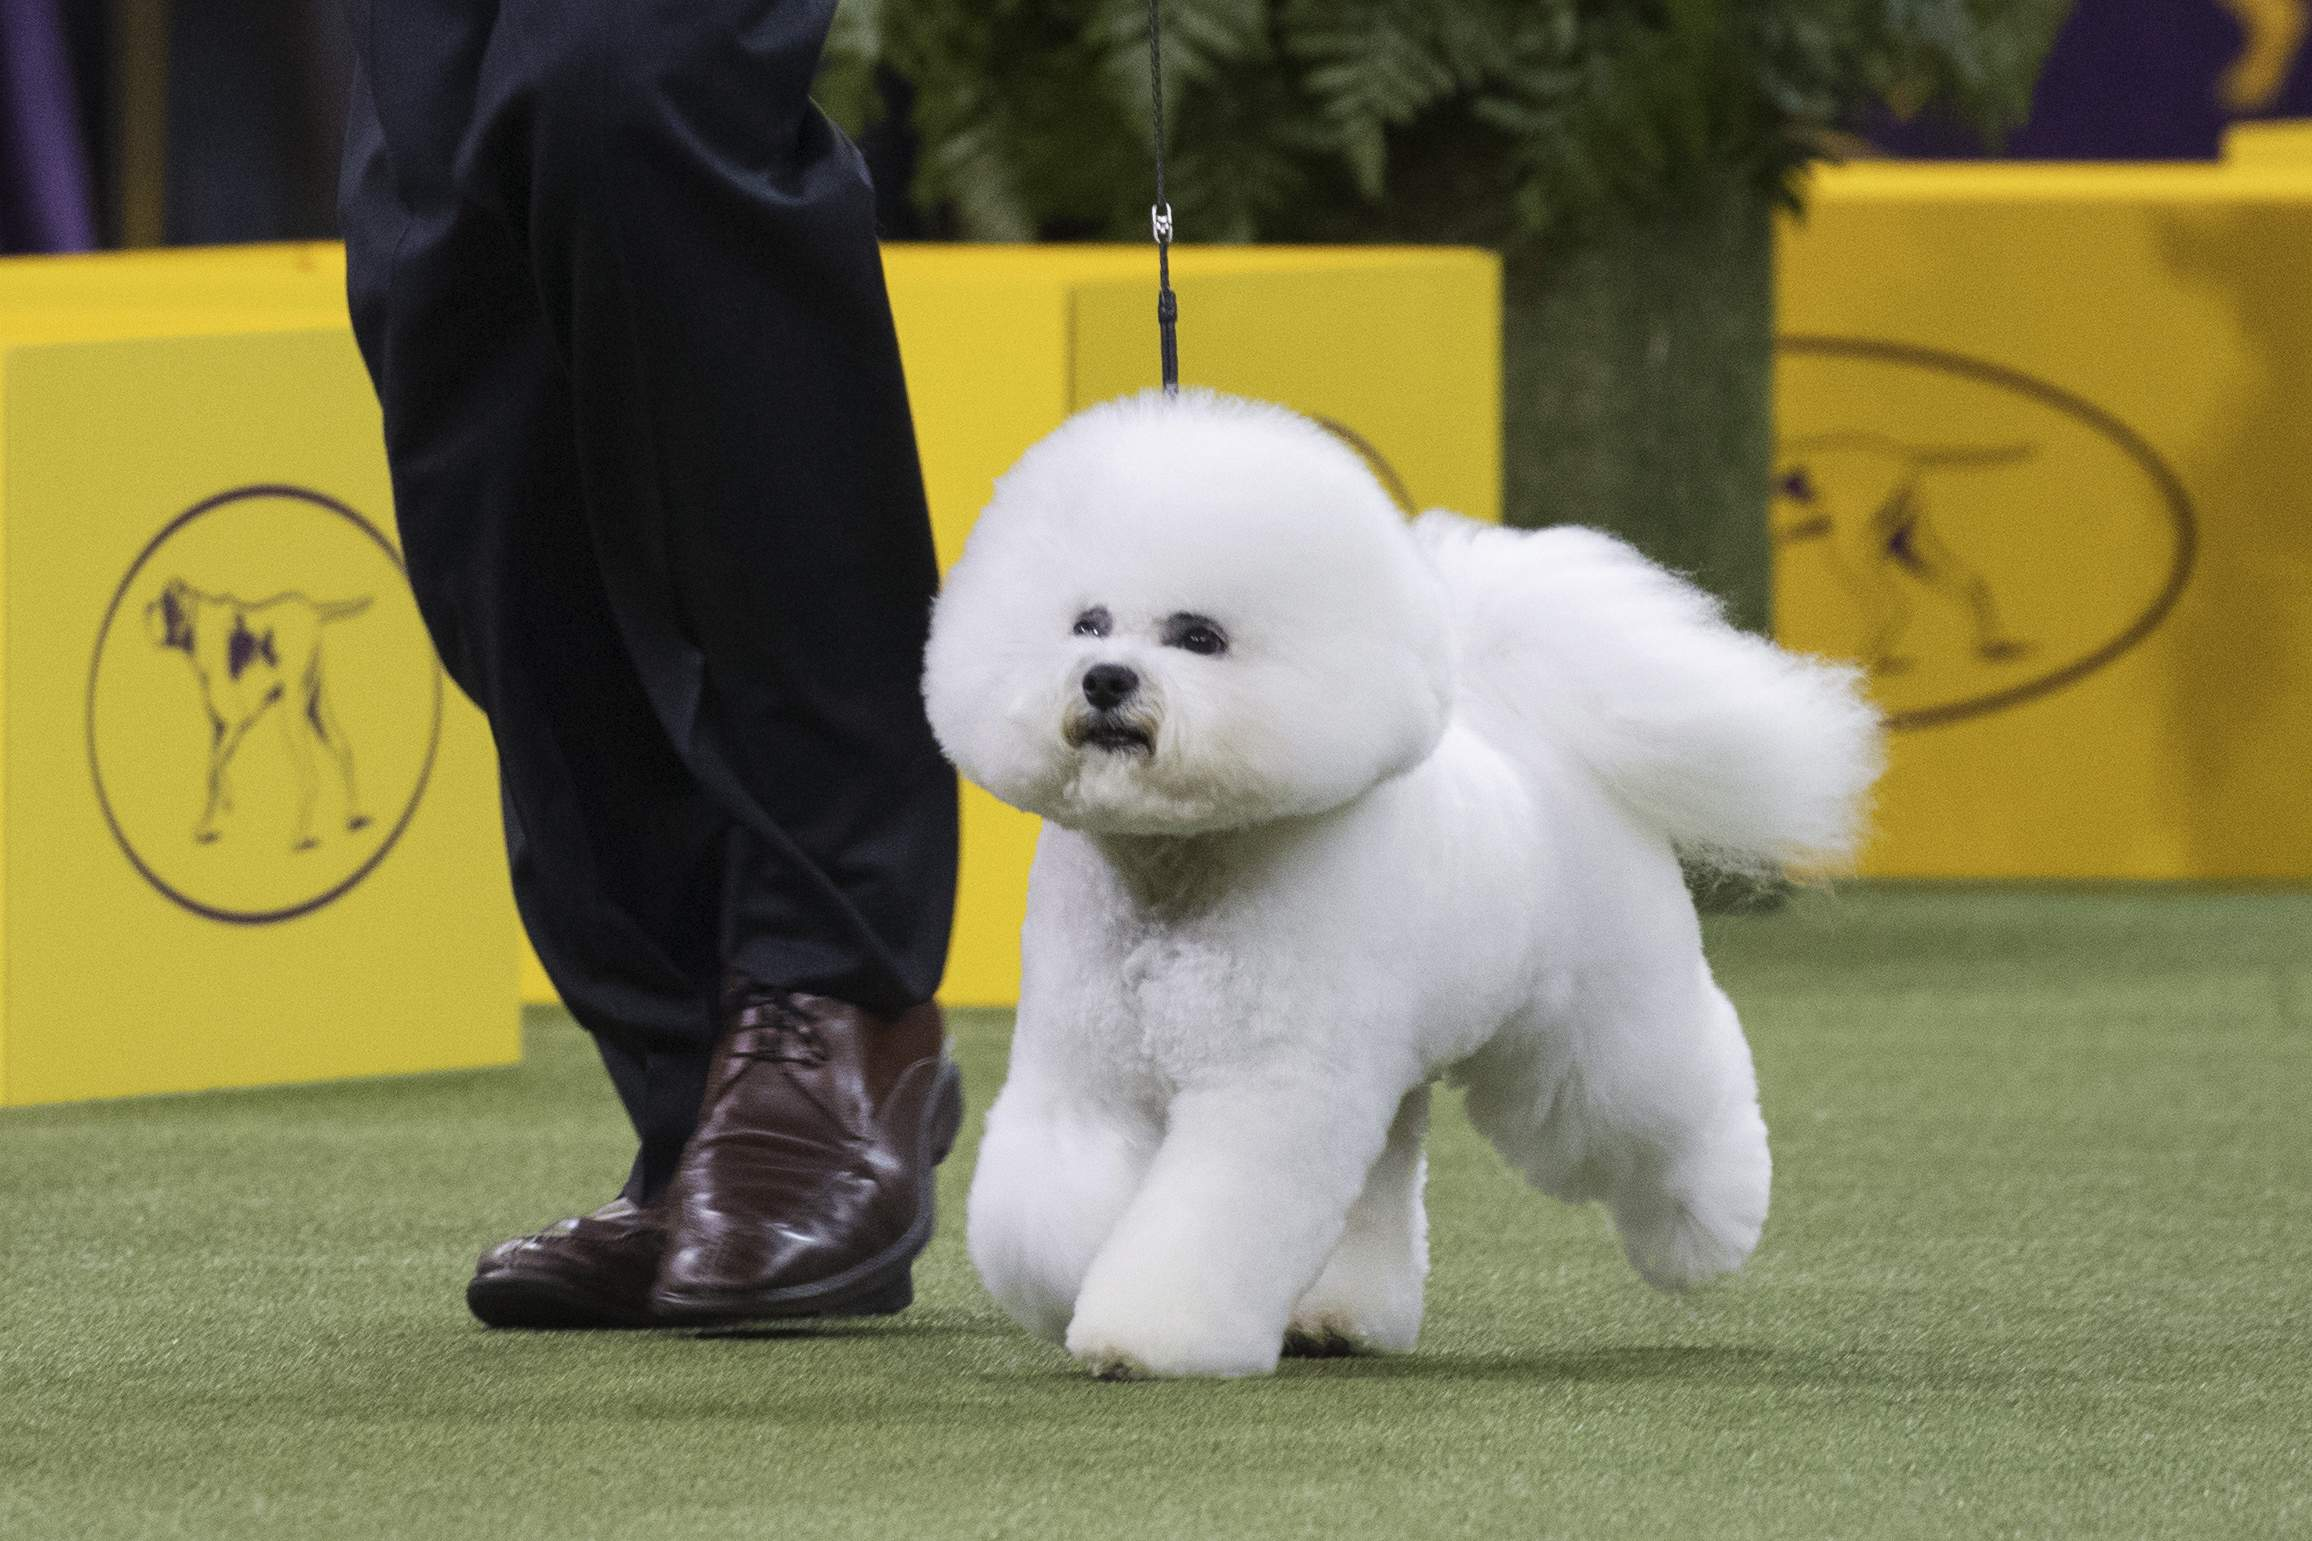 At Westminster Kennel Club, bichon frise Flynn becomes